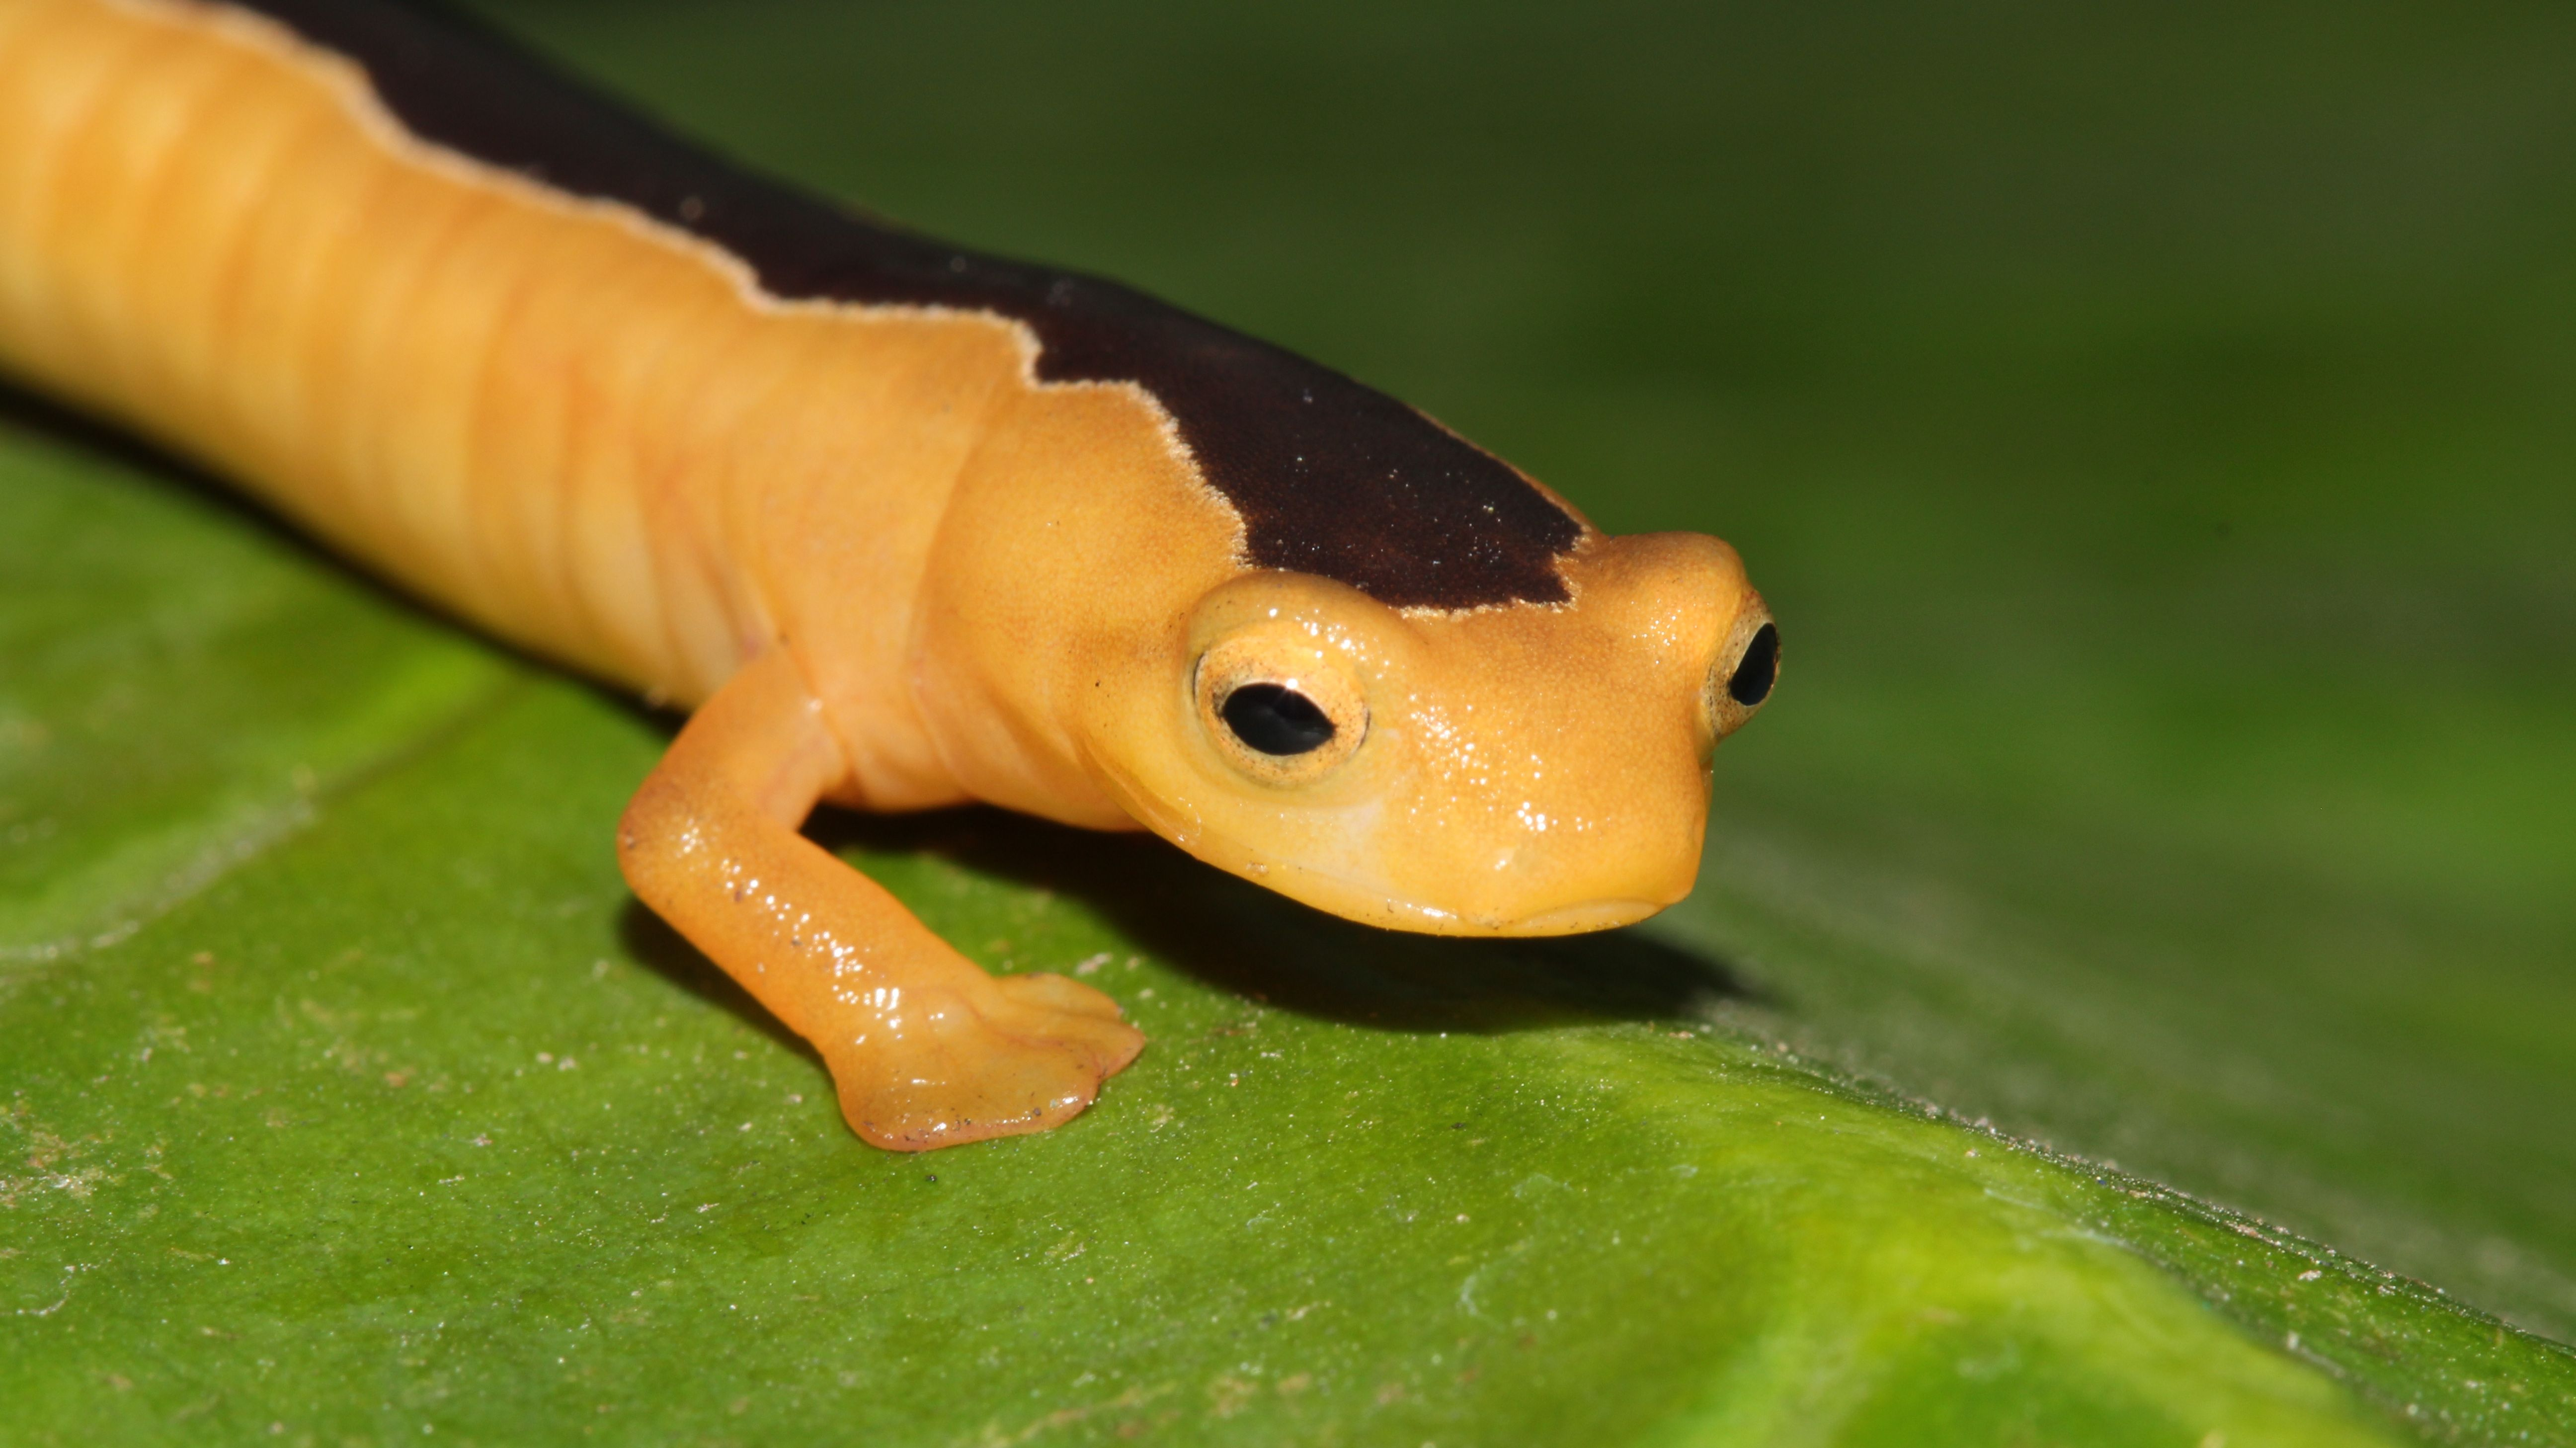 Presumed Extinct, the Rare 'Golden Wonder' Salamander Reappears After 42 Years - Mental Floss